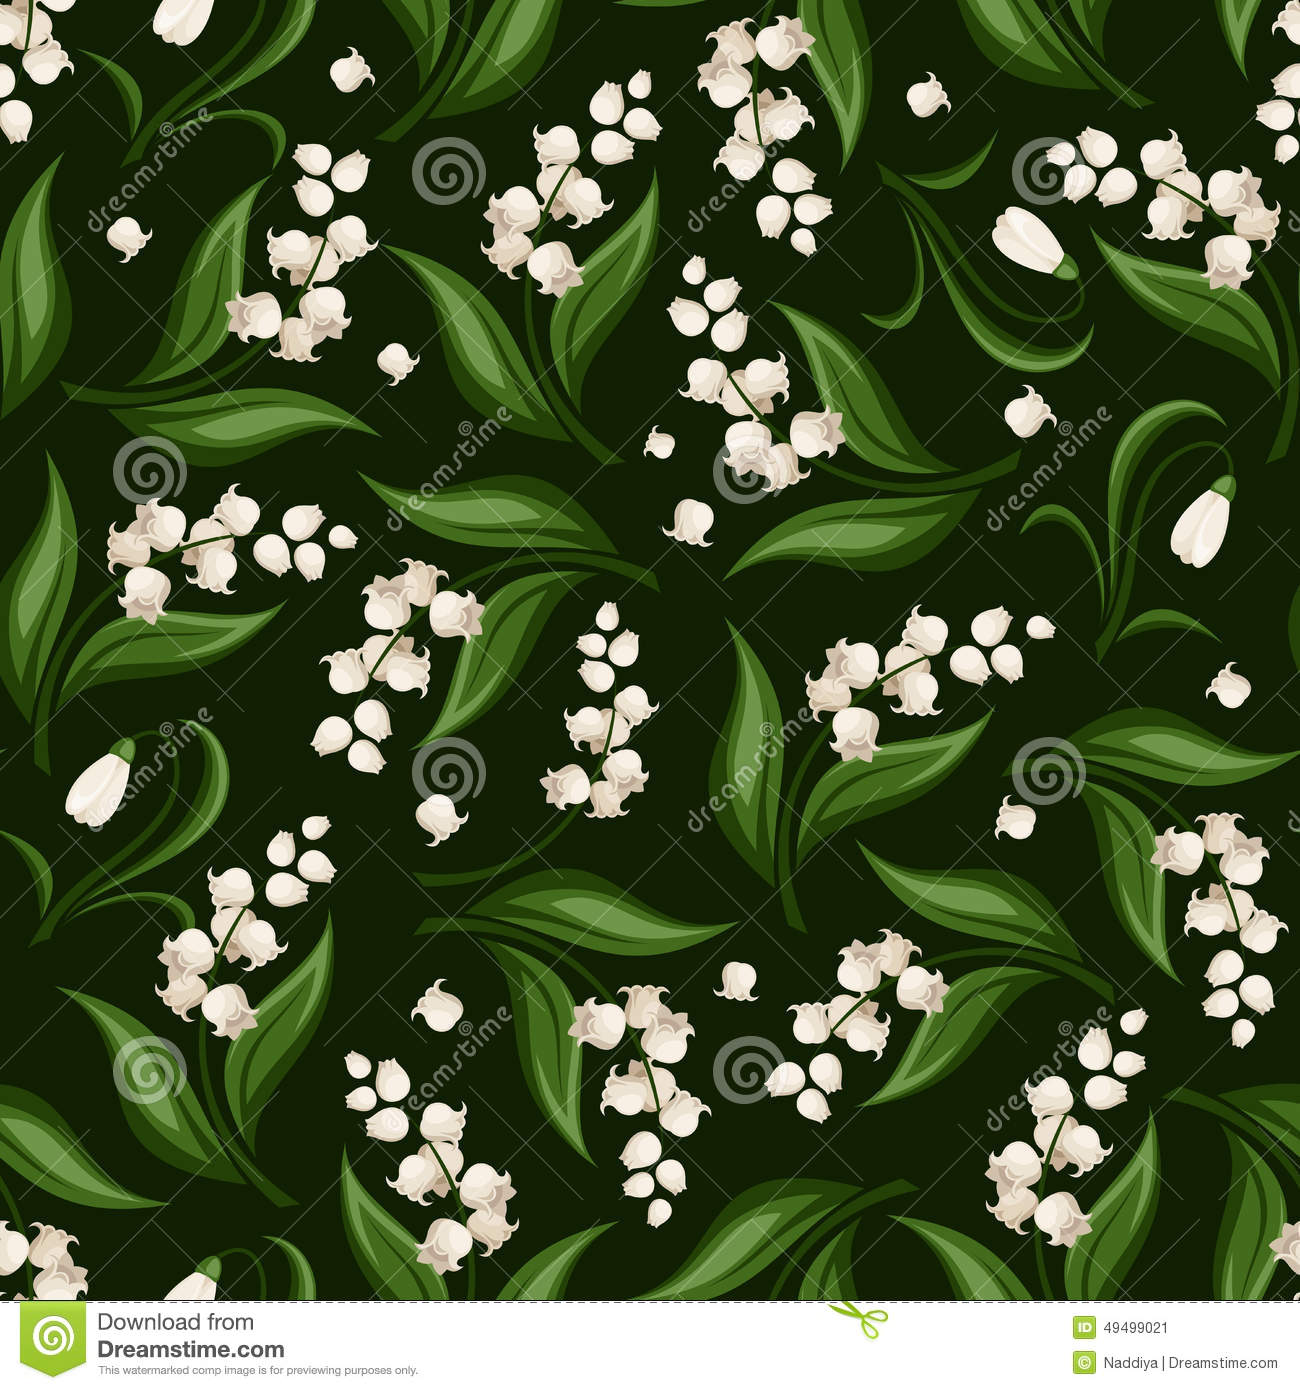 Seamless pattern with lily of the valley and snowdrop flowers seamless pattern with lily of the valley and snowdrop flowers vector illustration izmirmasajfo